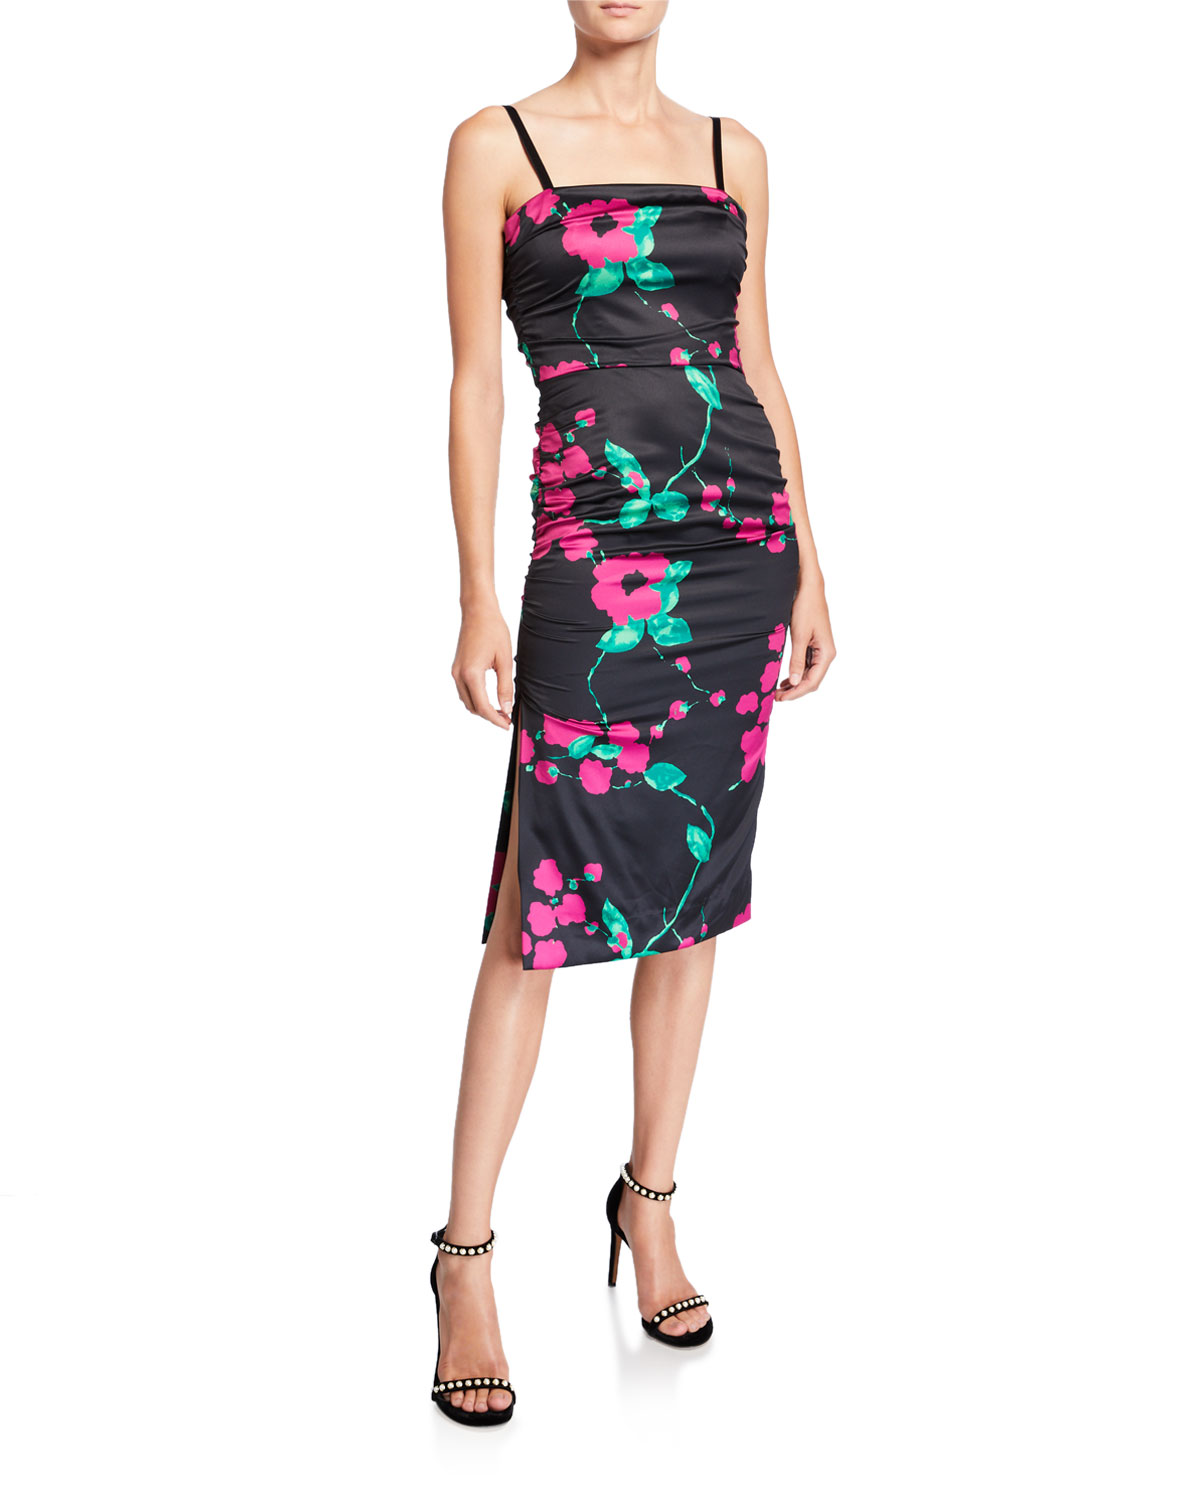 Milly Dresses DAYNA PAINTED FLORAL SLEEVELESS SATIN COCKTAIL DRESS